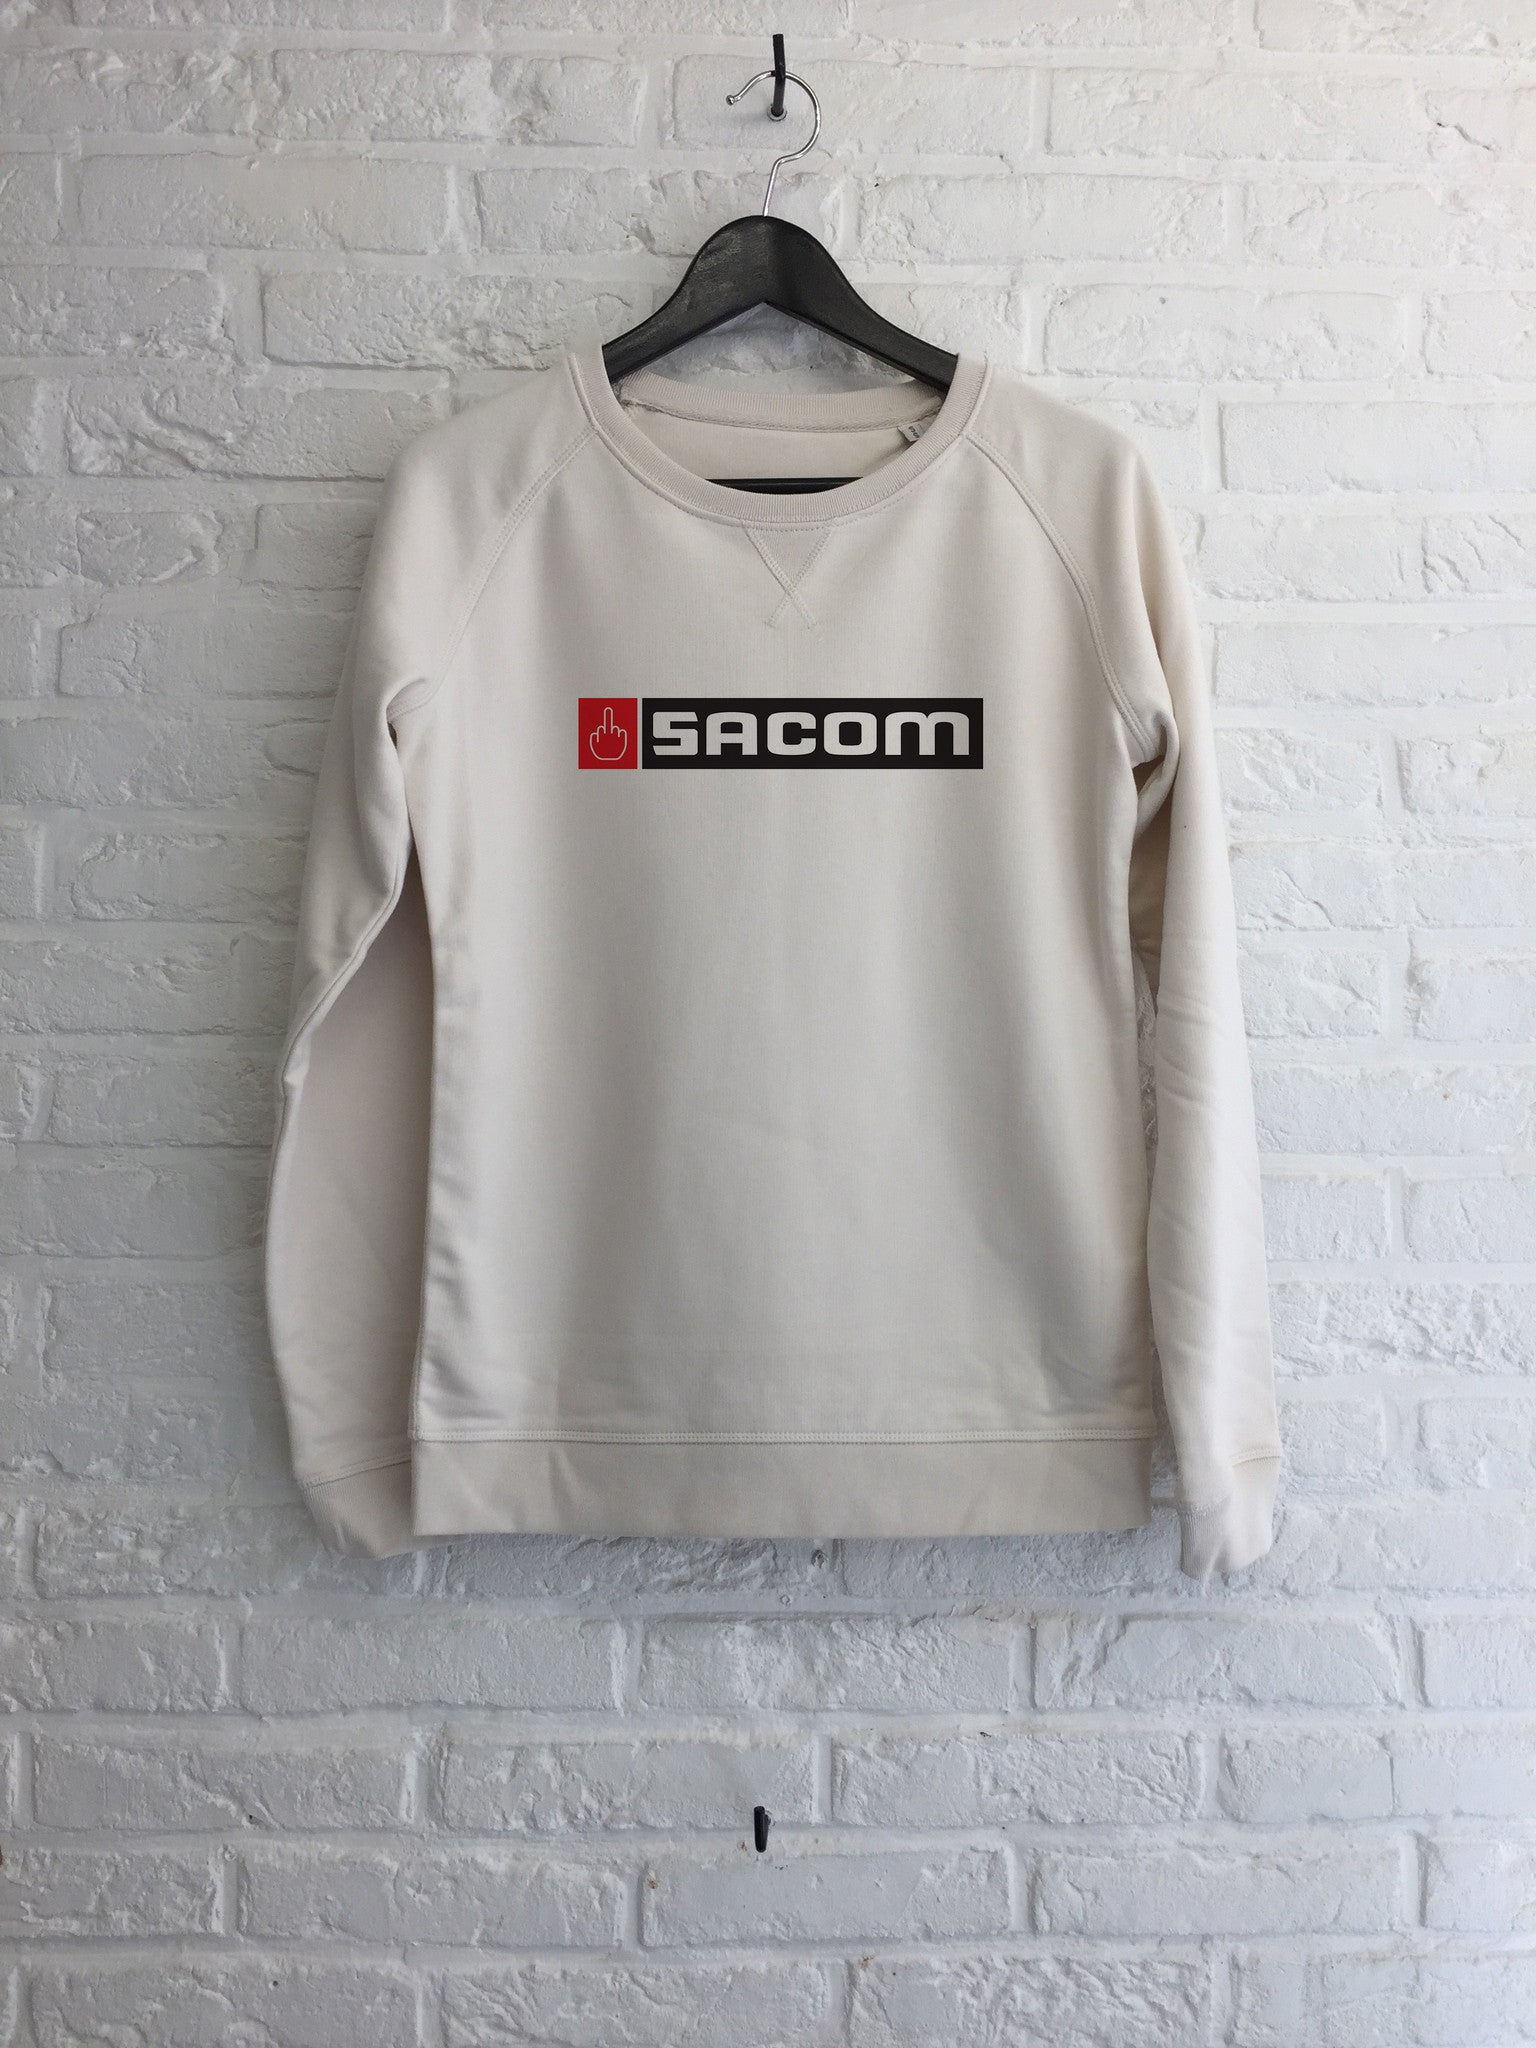 Sacom - Sweat - Femme-Sweat shirts-Atelier Amelot